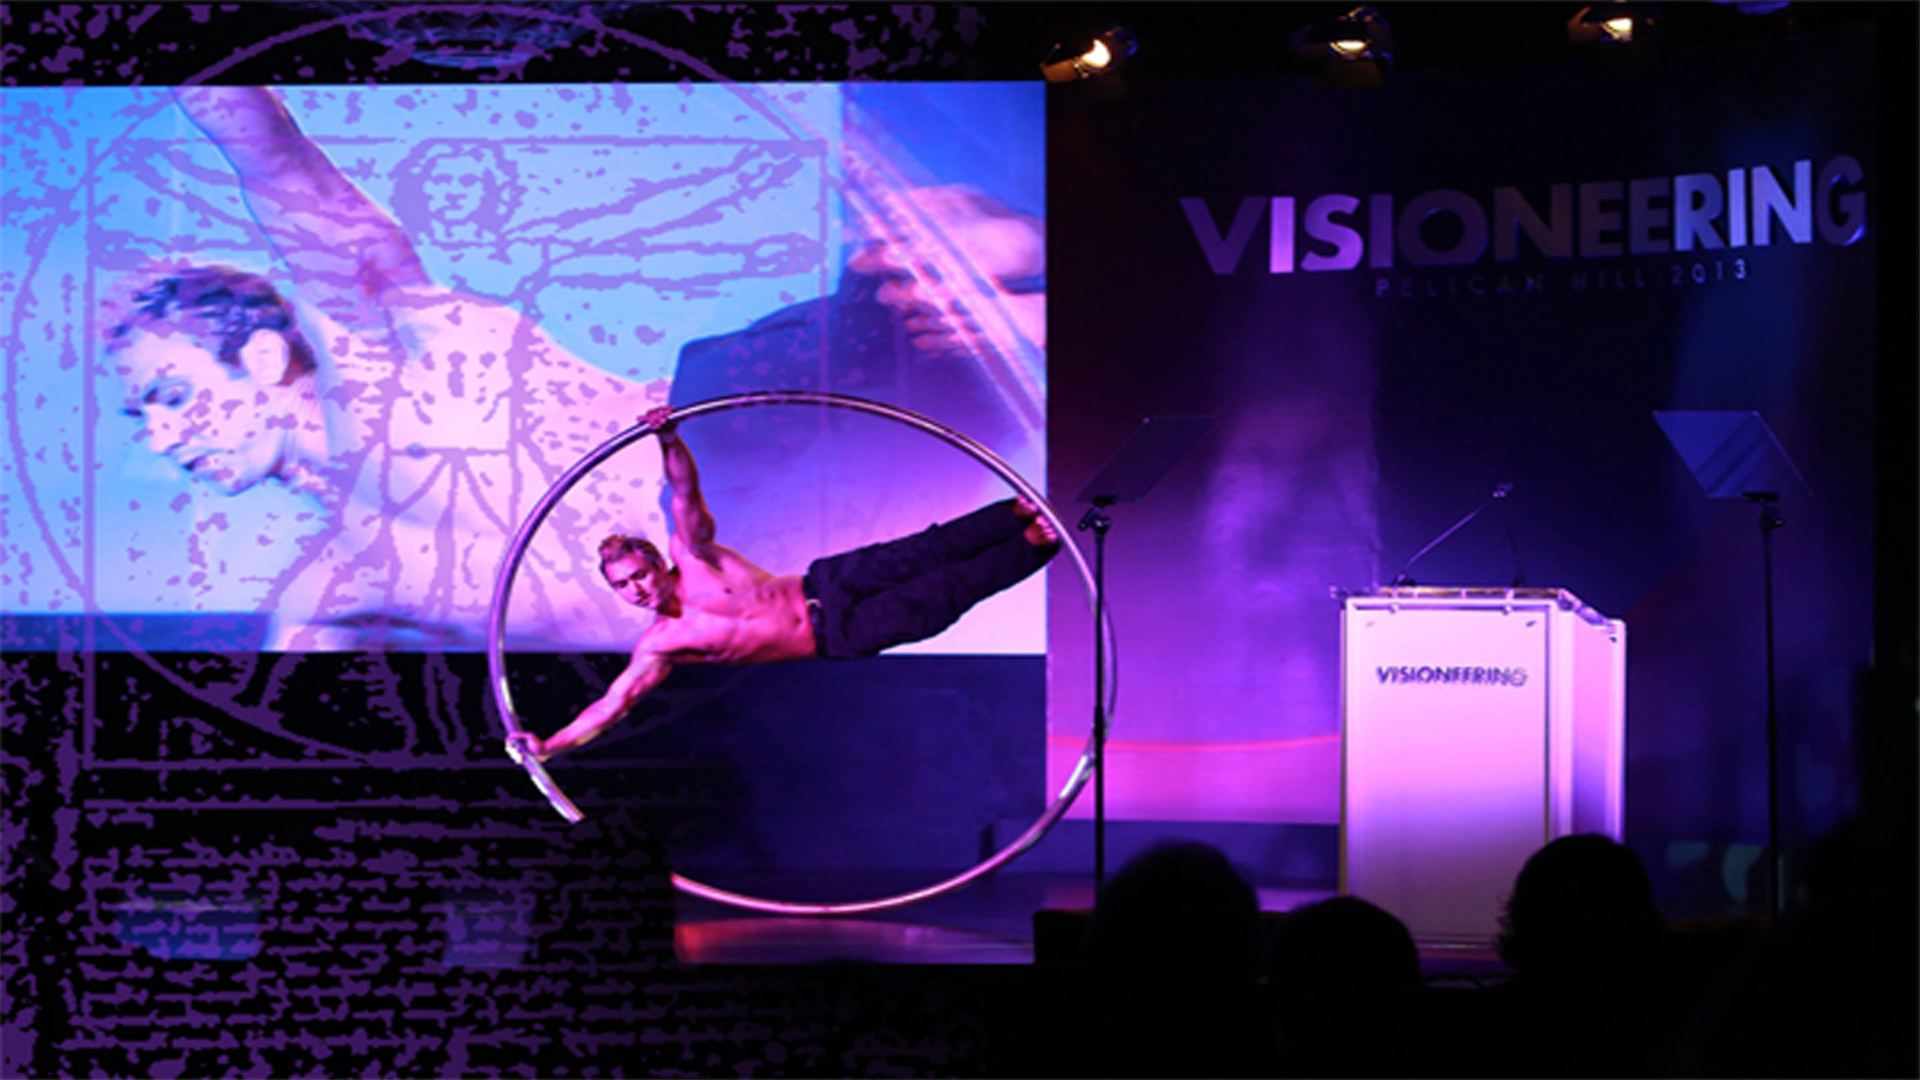 XPize Foundation 4 Day Event Think Tank. Leonardo's Vitruvian Man live opening night ceremony